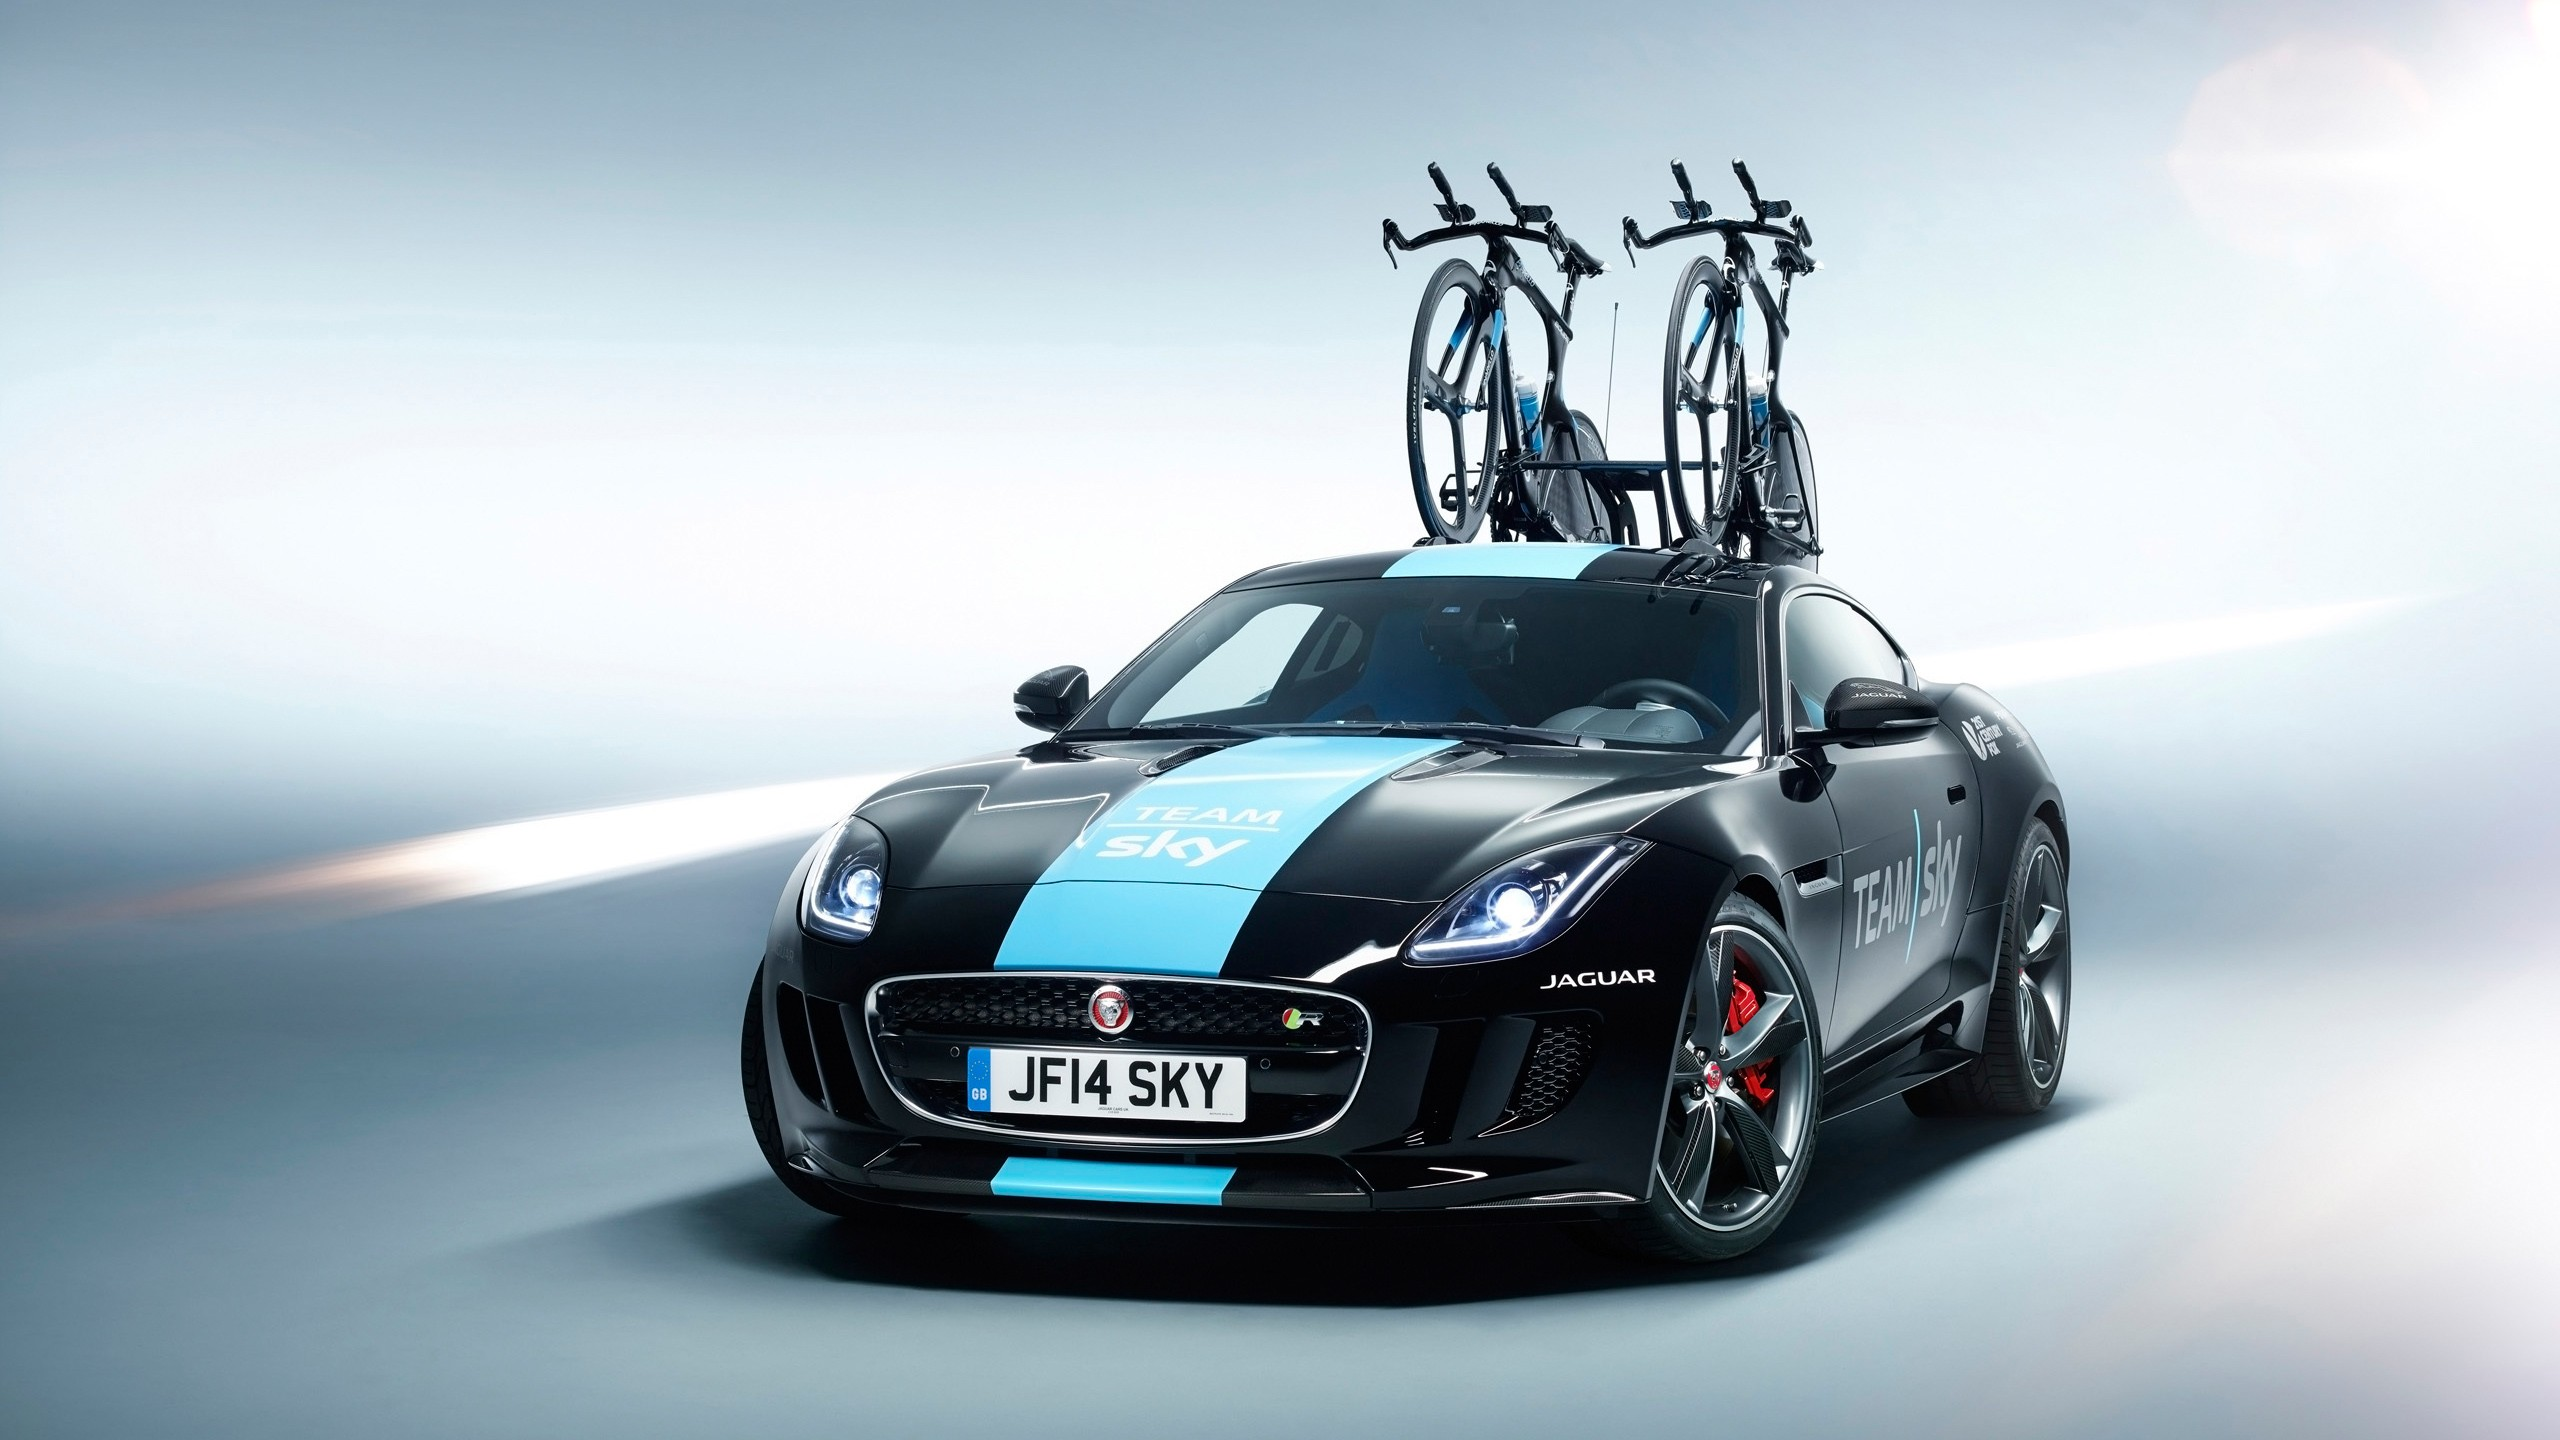 Www Hummer Car Wallpapers Com 2014 Jaguar F Type Coupe Tour De France Wallpaper Hd Car